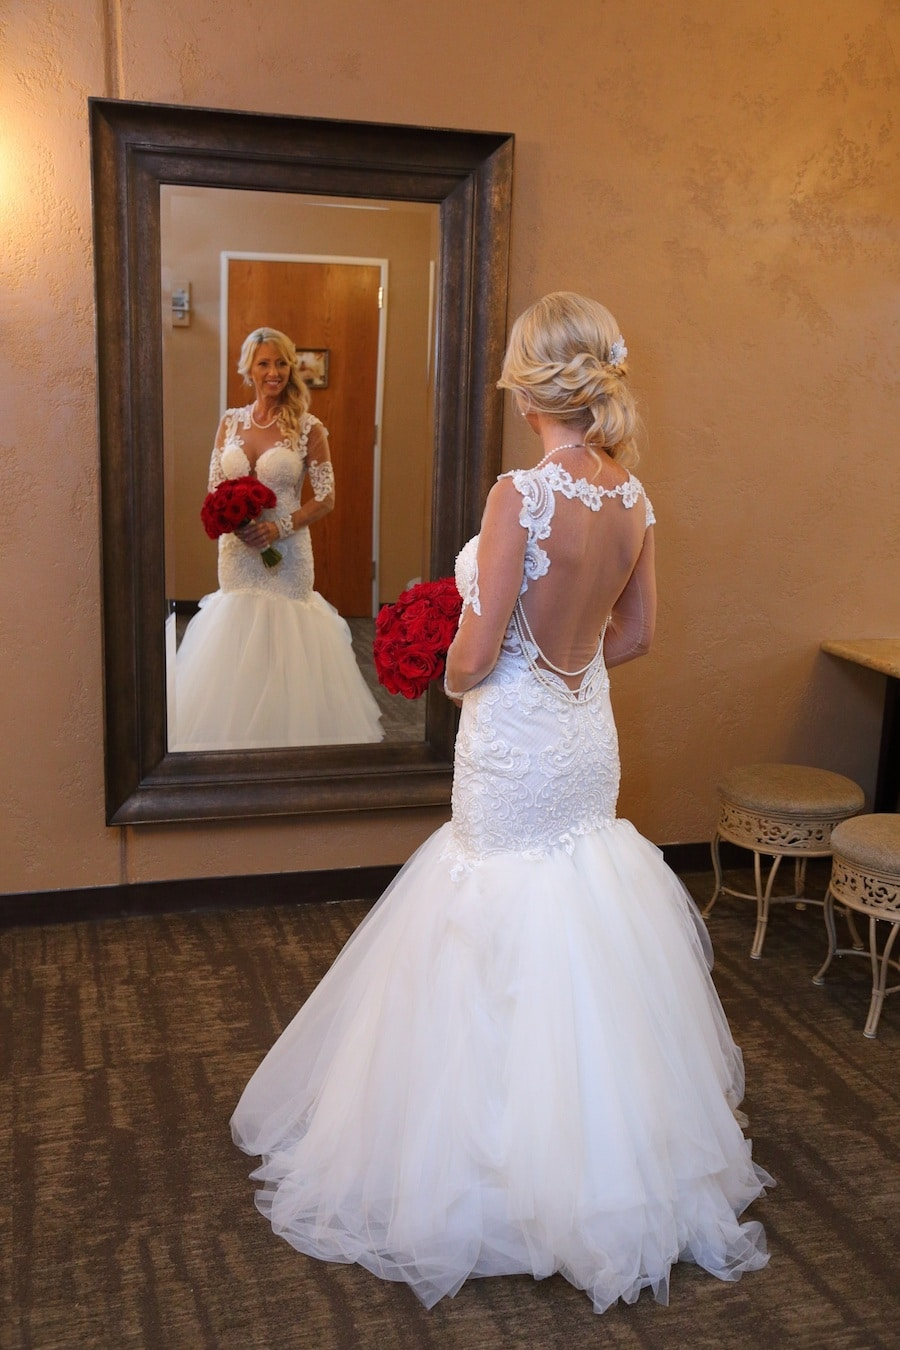 Naama and Anat Haute Couture, red rose inspired wedding, classic, red and white, Naama and Anat Bridal, wedding dress, bridal couture, couture bridal, bridal designer, wedding gown, real wedding, bride